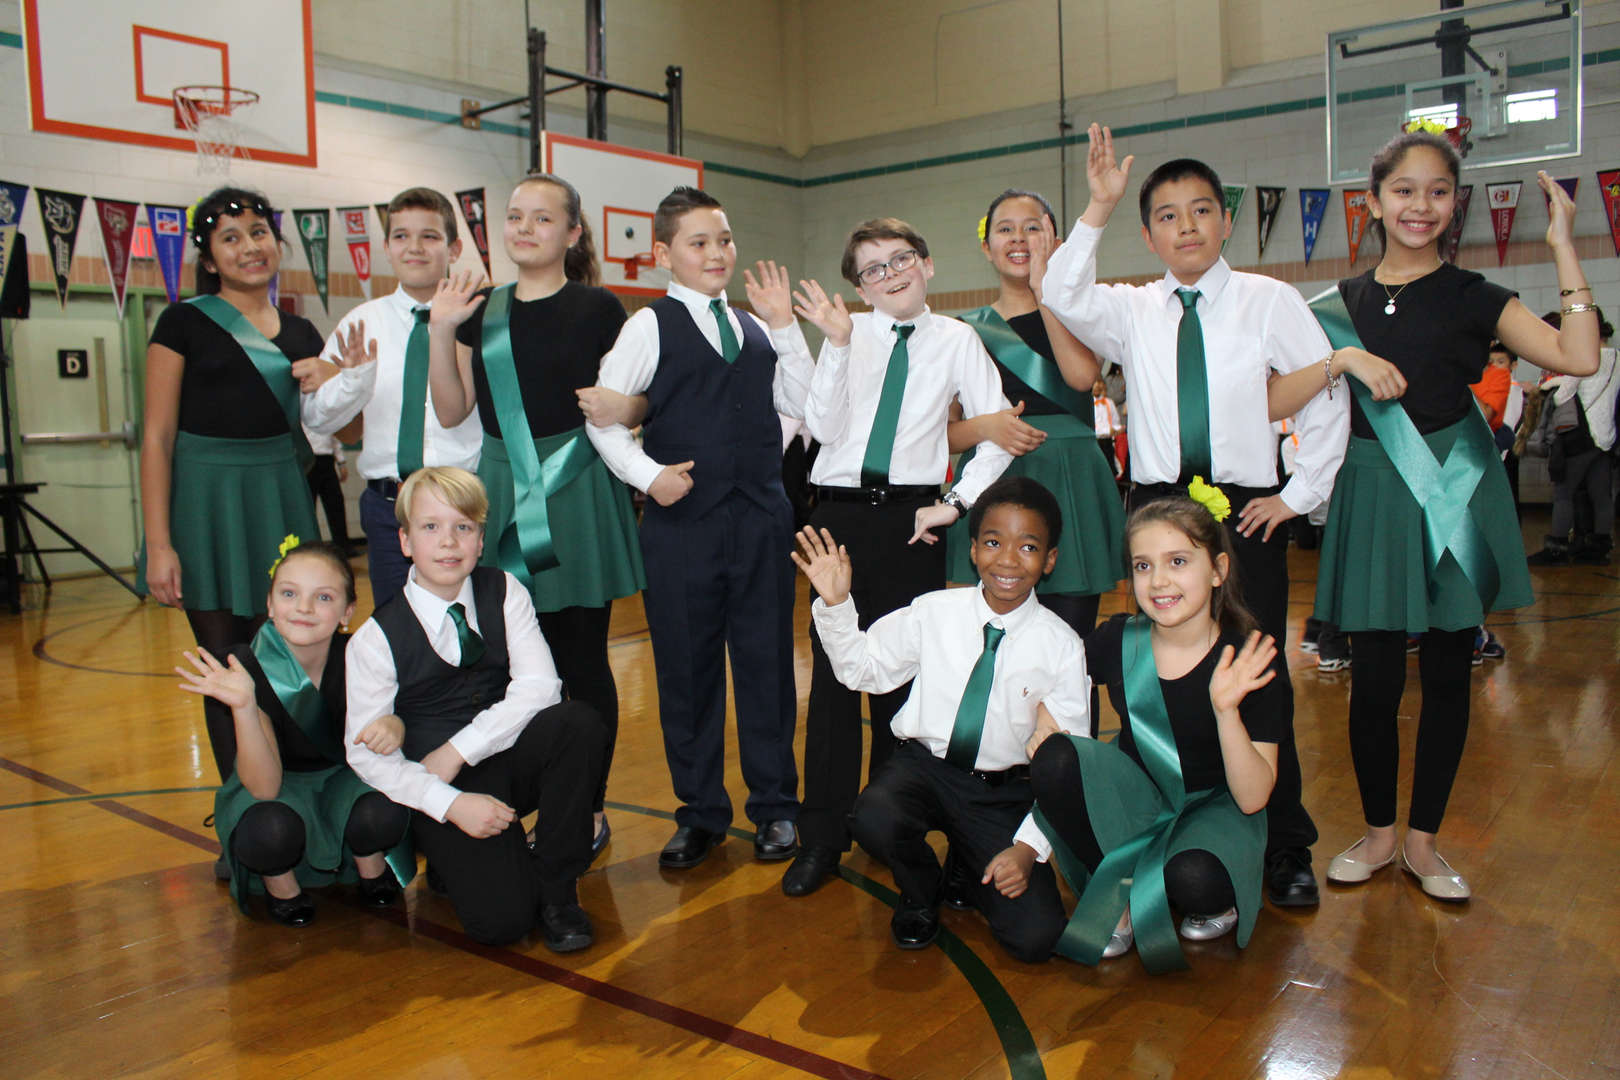 5th Grade Class of 2016 Ballroom Dancing Team